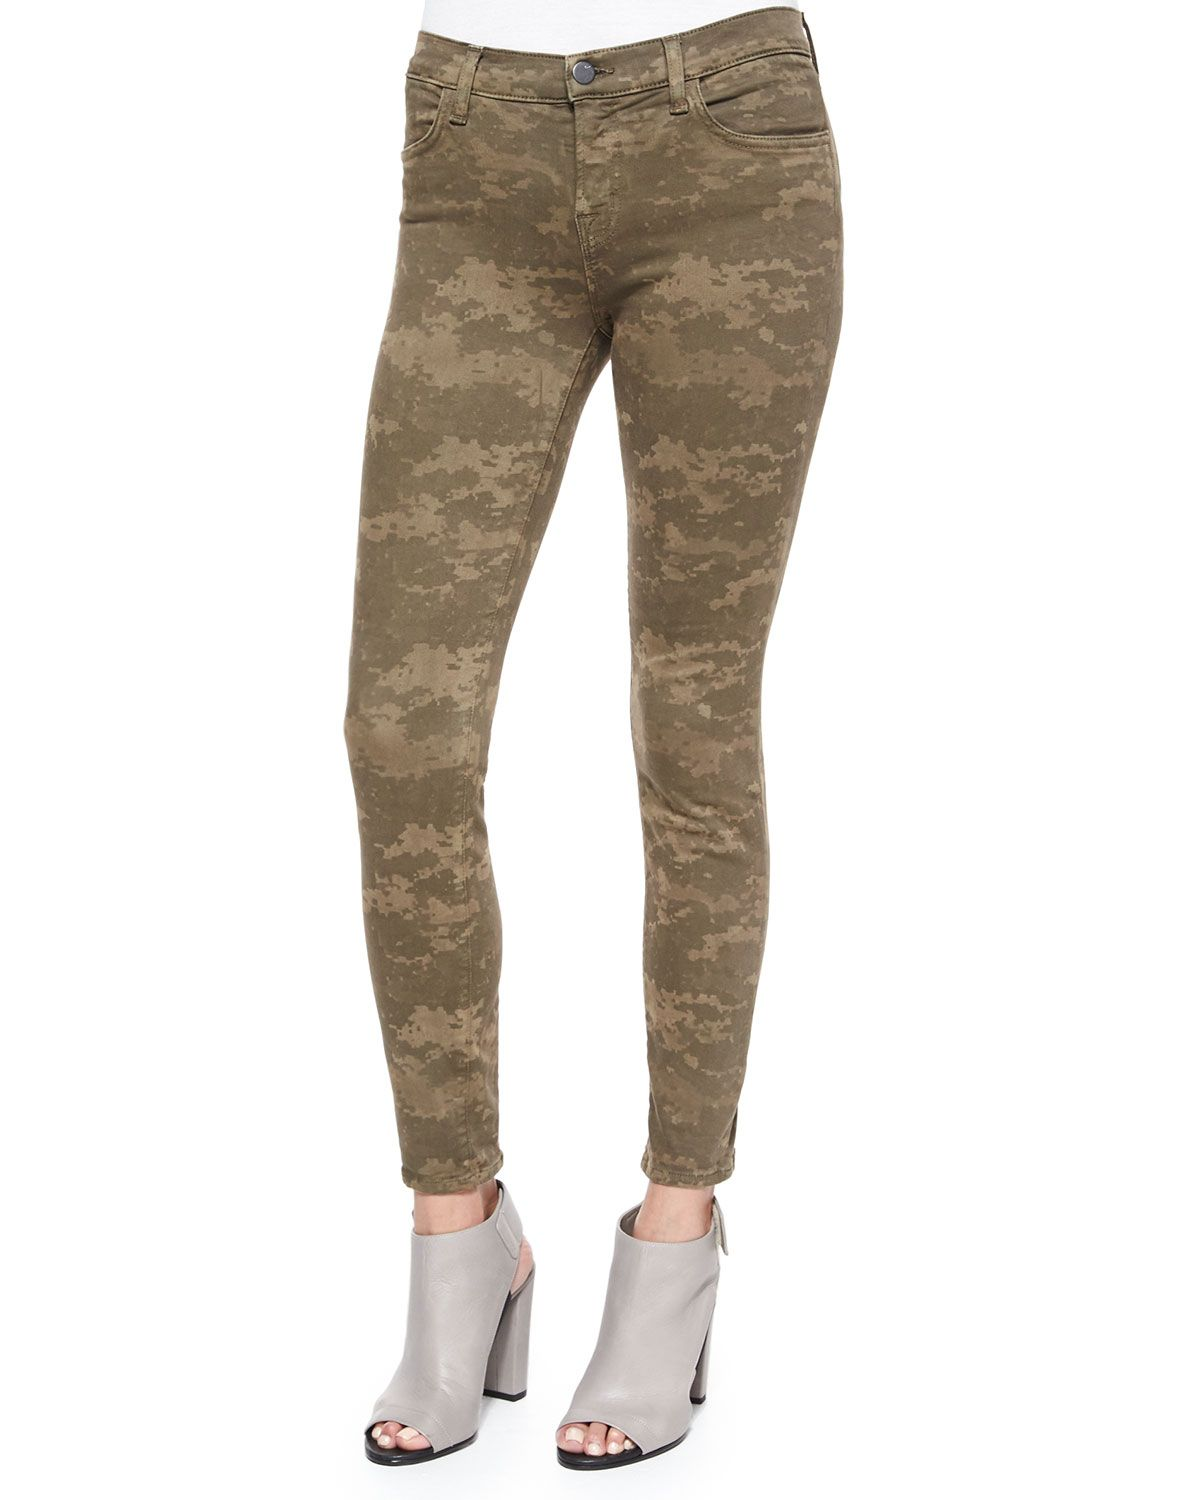 Midrise skinny jeans olive drab camo skinny jeans camo and skinny